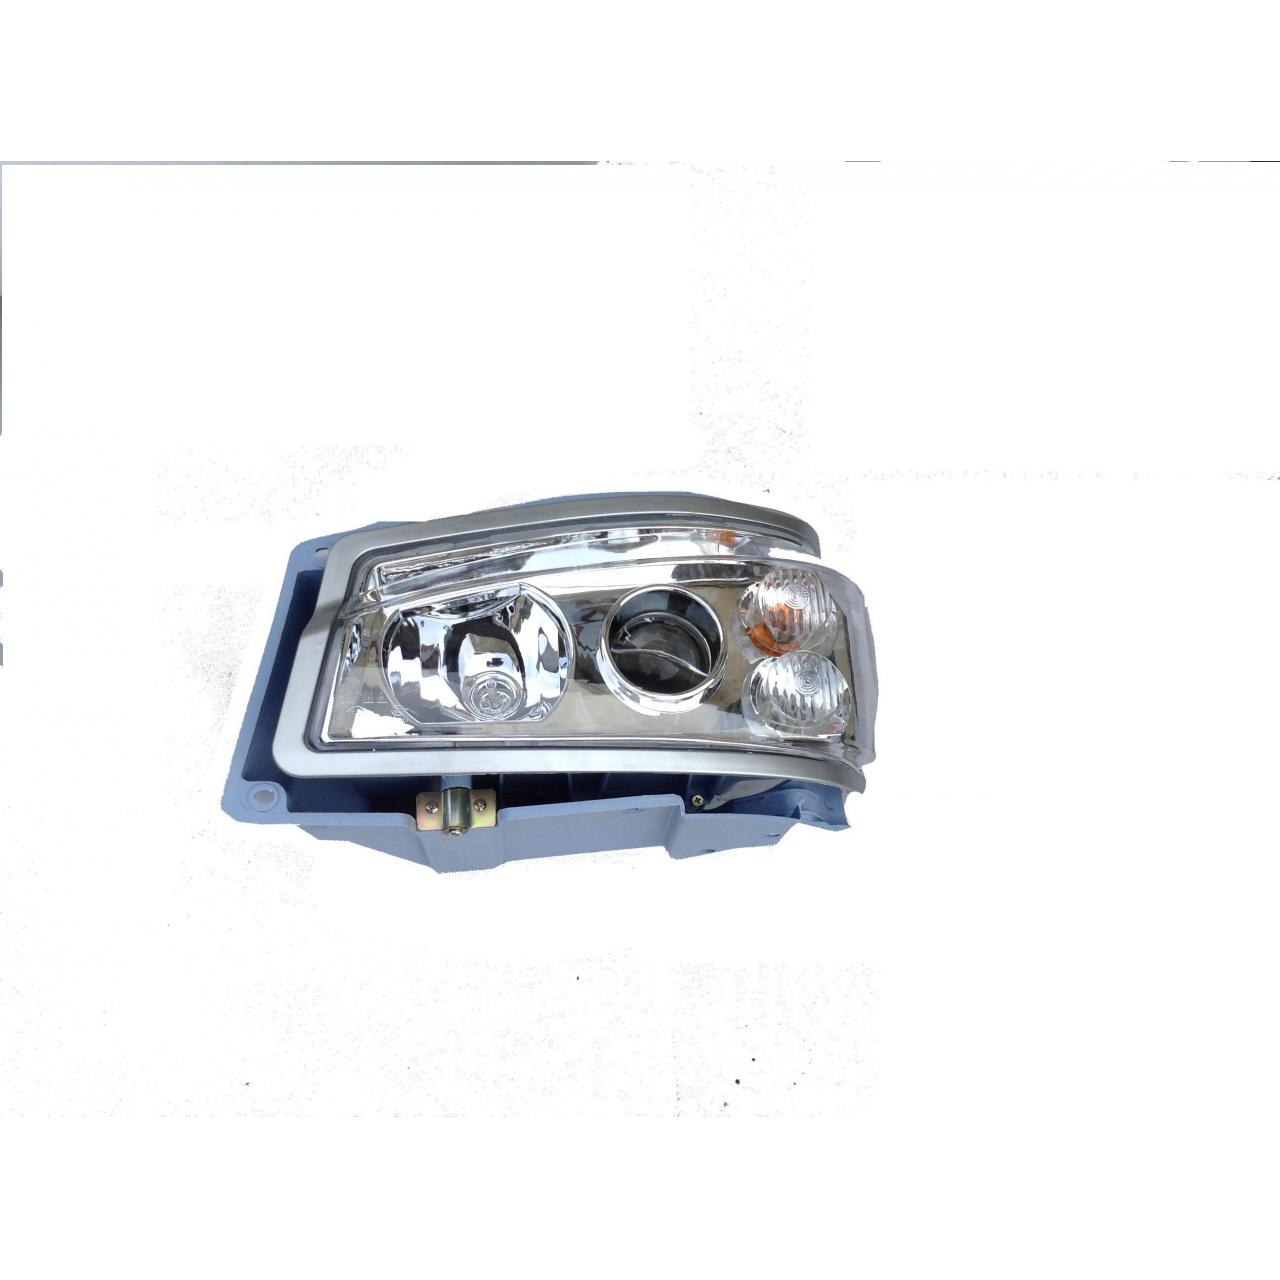 Buy cheap Sinotruk Howo tractor truck parts Left headlight assembly WG9719720001 price for sale from wholesalers